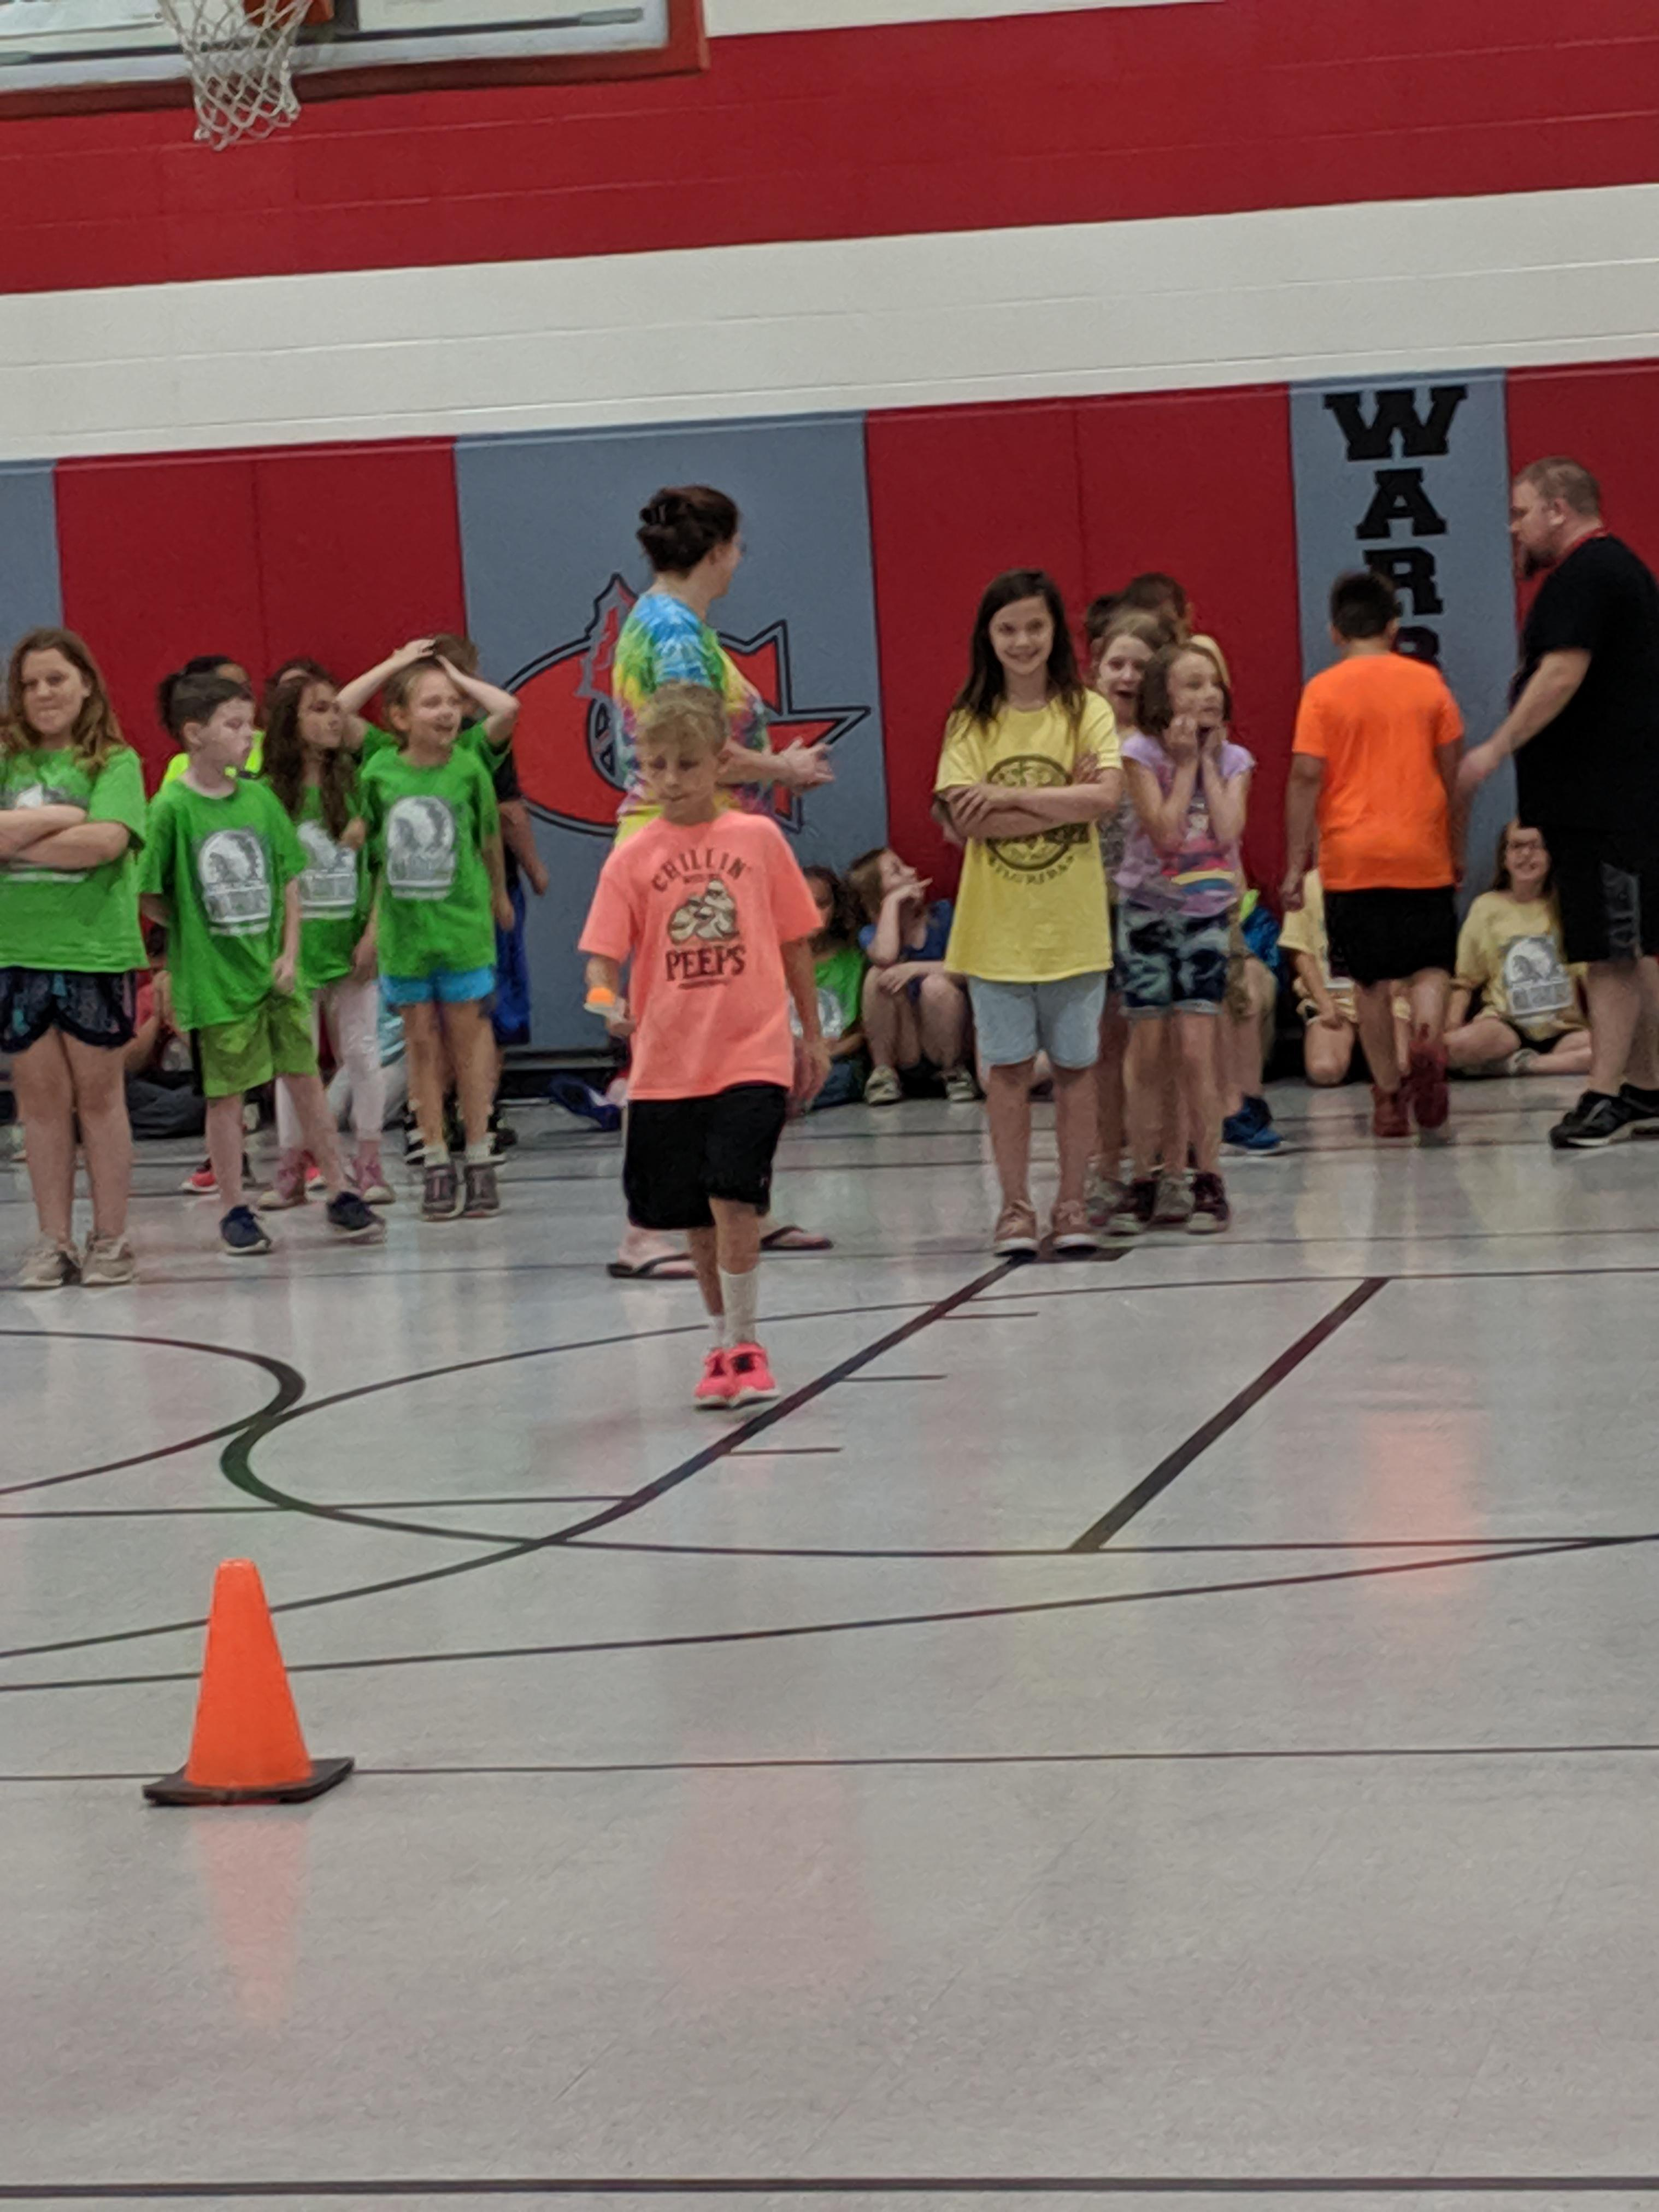 Track and field day